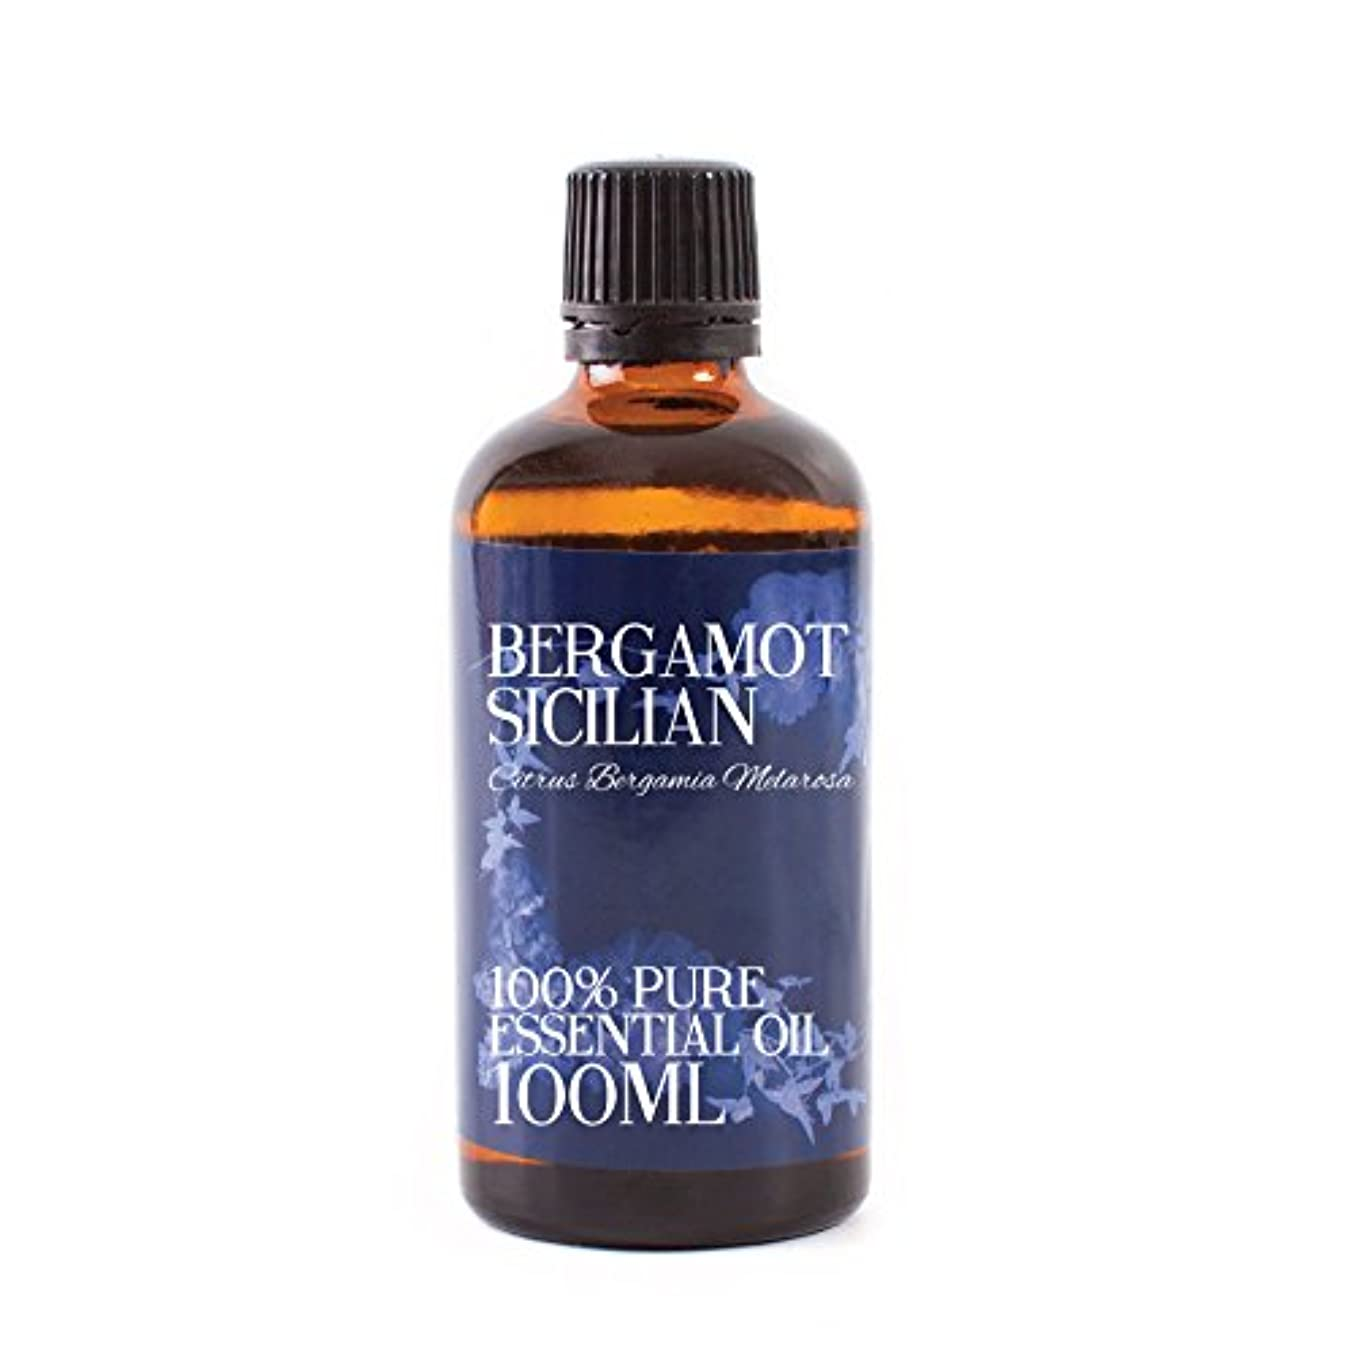 余裕がある若者おじいちゃんMystic Moments | Bergamot Sicilian Essential Oil - 100ml - 100% Pure